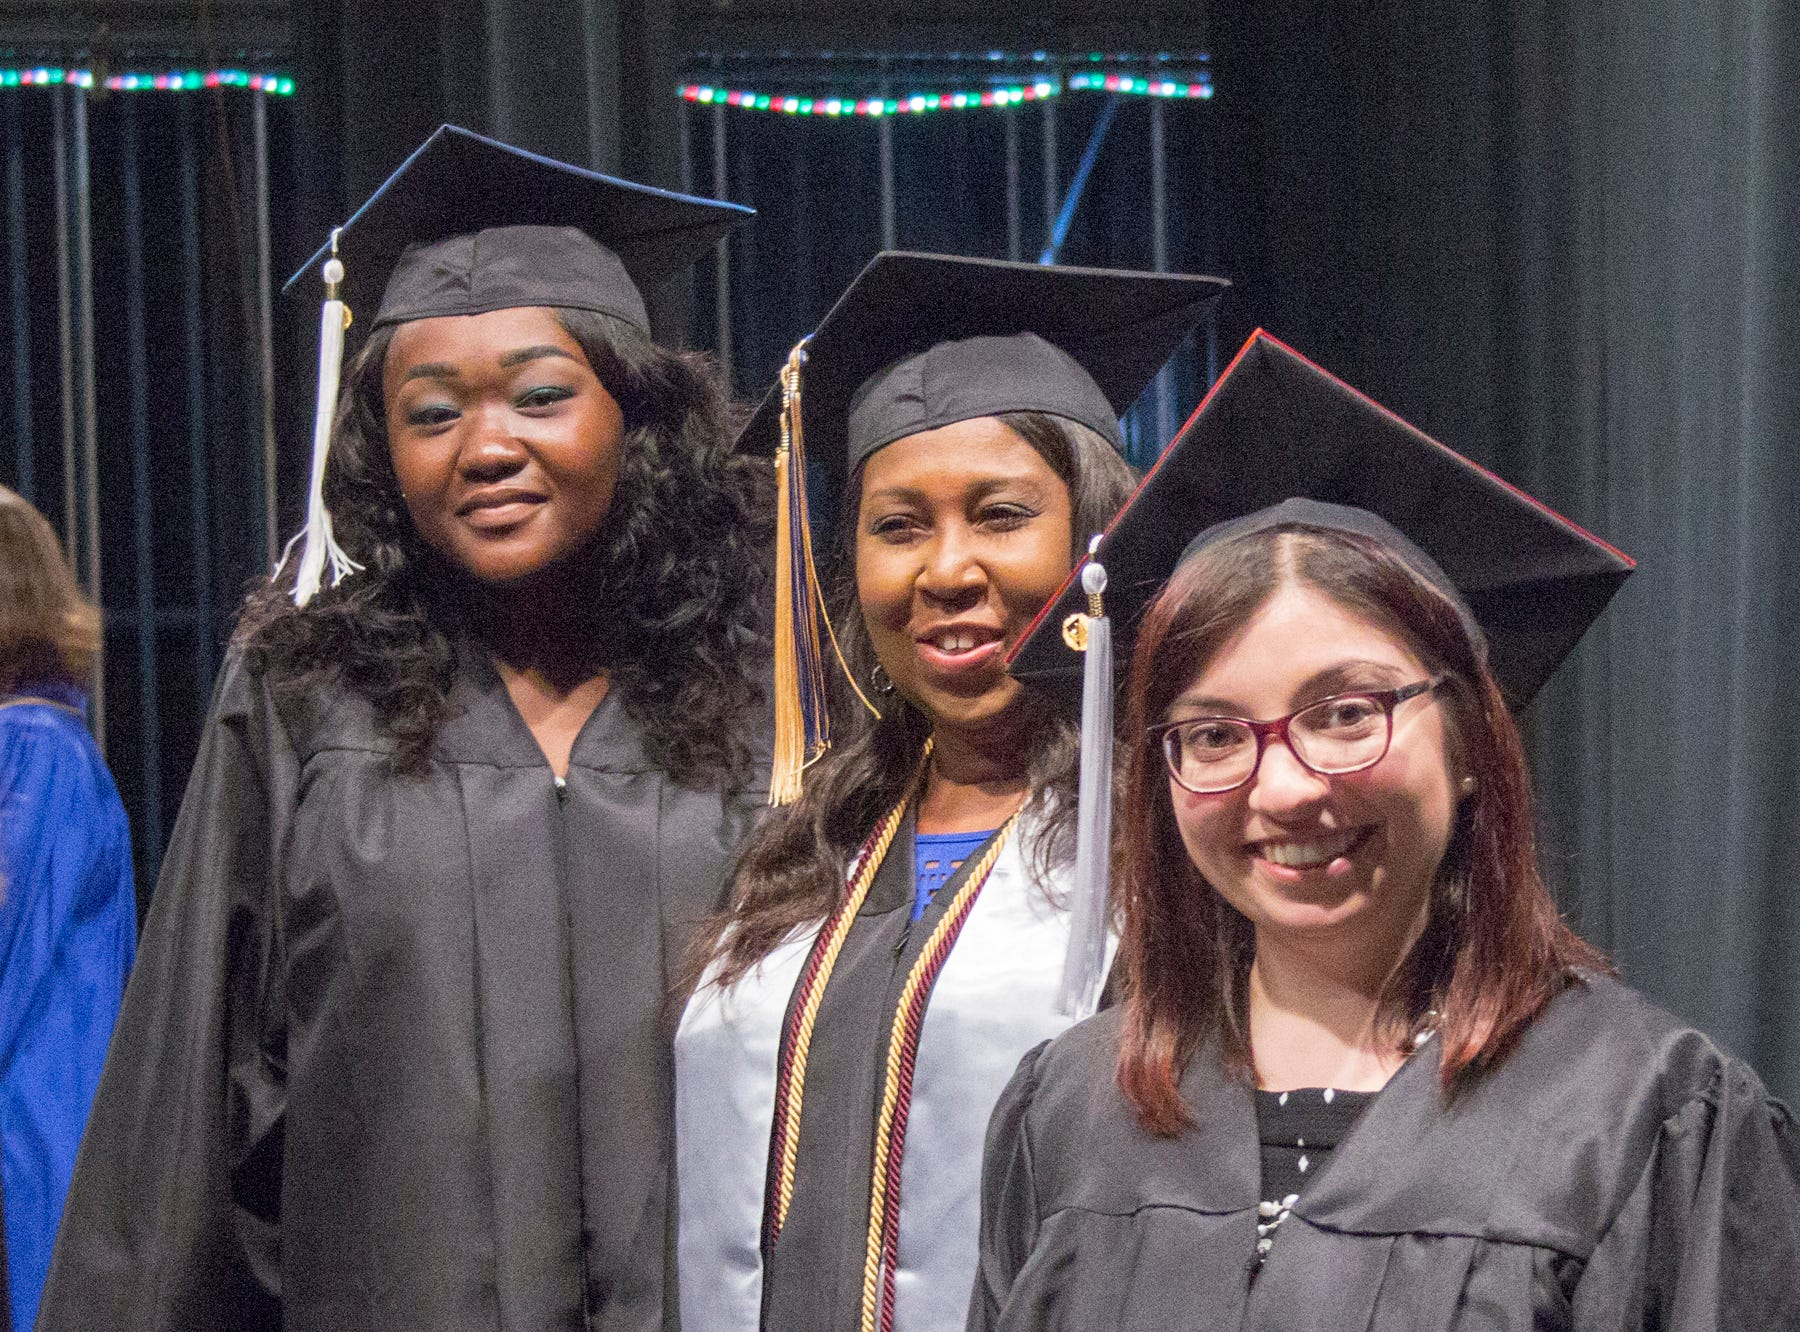 Mars Hill University conferred bachelor's degrees on 71 graduates on Dec. 14, 2018.